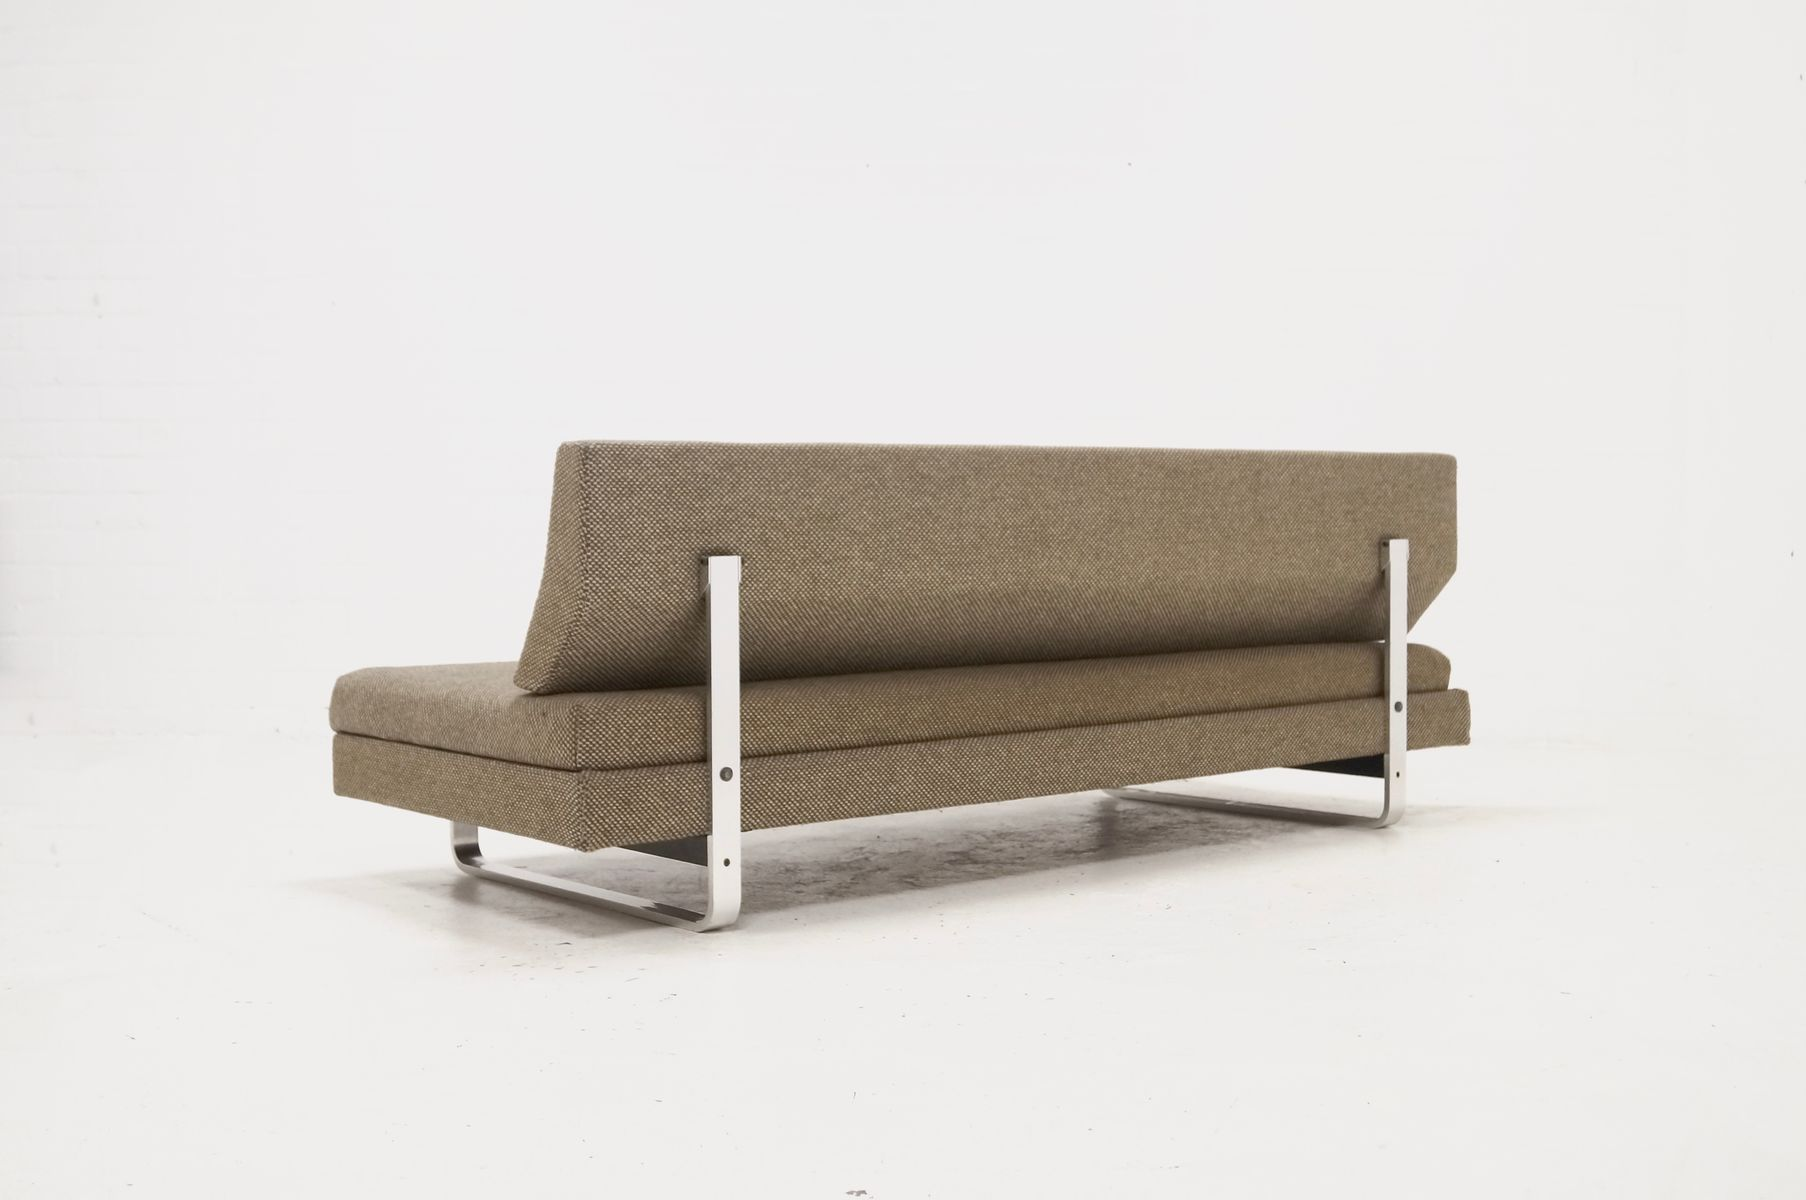 midcentury beaufort daybed sofa by georges van rijk 1960s